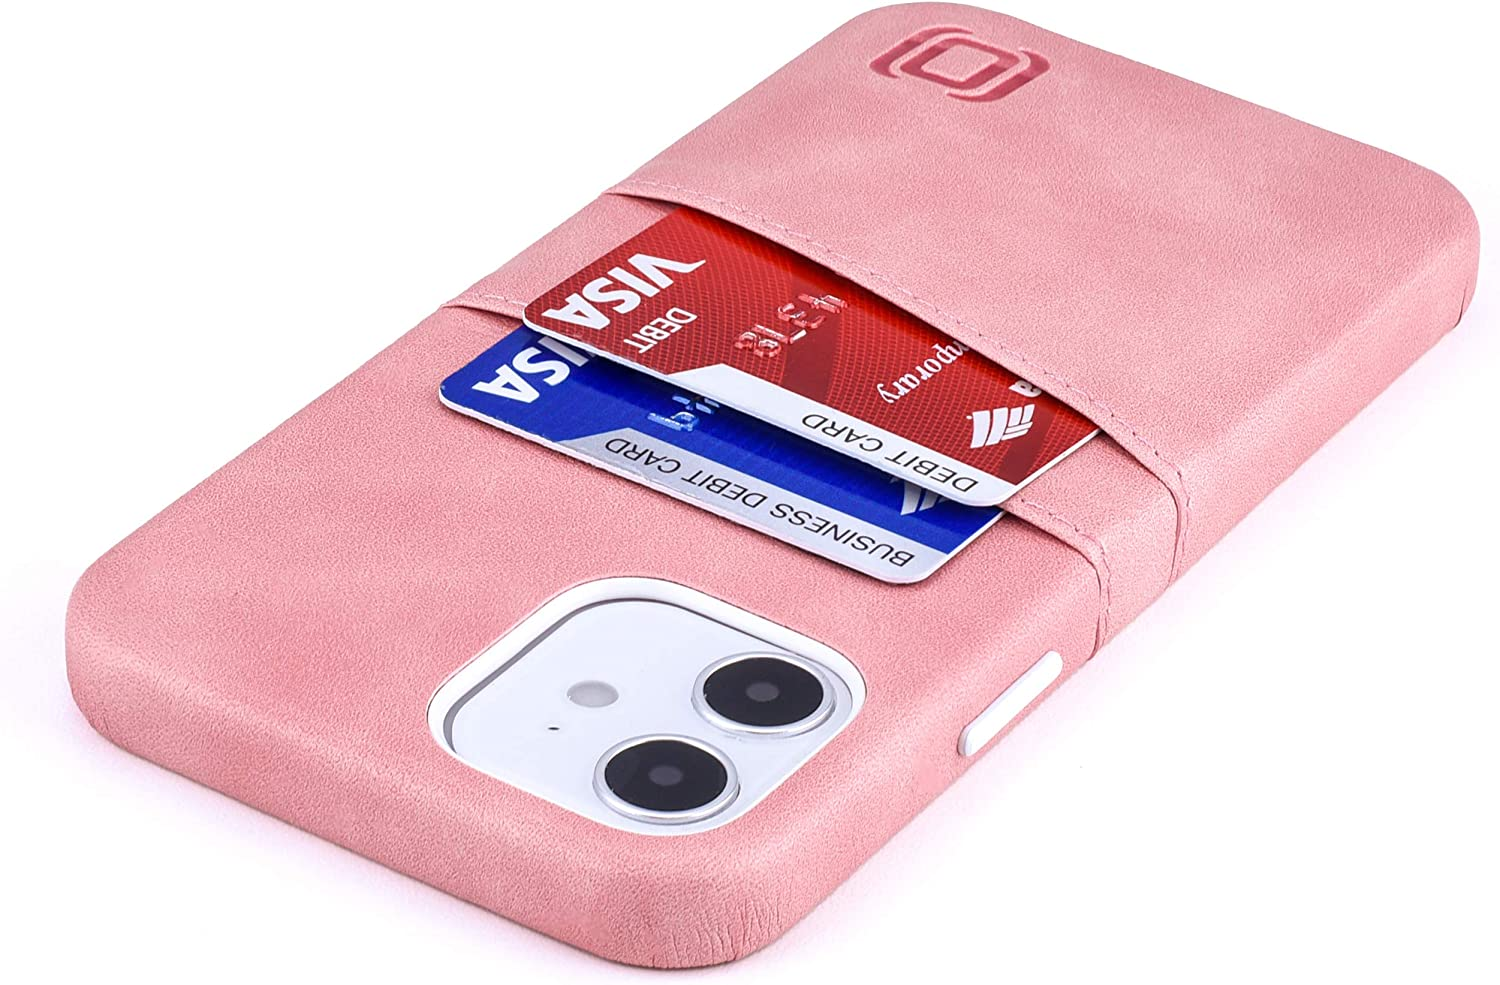 """Dockem iPhone 12 & iPhone 12 Pro Wallet Case: Built-in Metal Plate for Magnetic Mounting & 2 Credit Card Holders (6.1"""" Exec M2, Smooth Synthetic Leather, Pink)"""